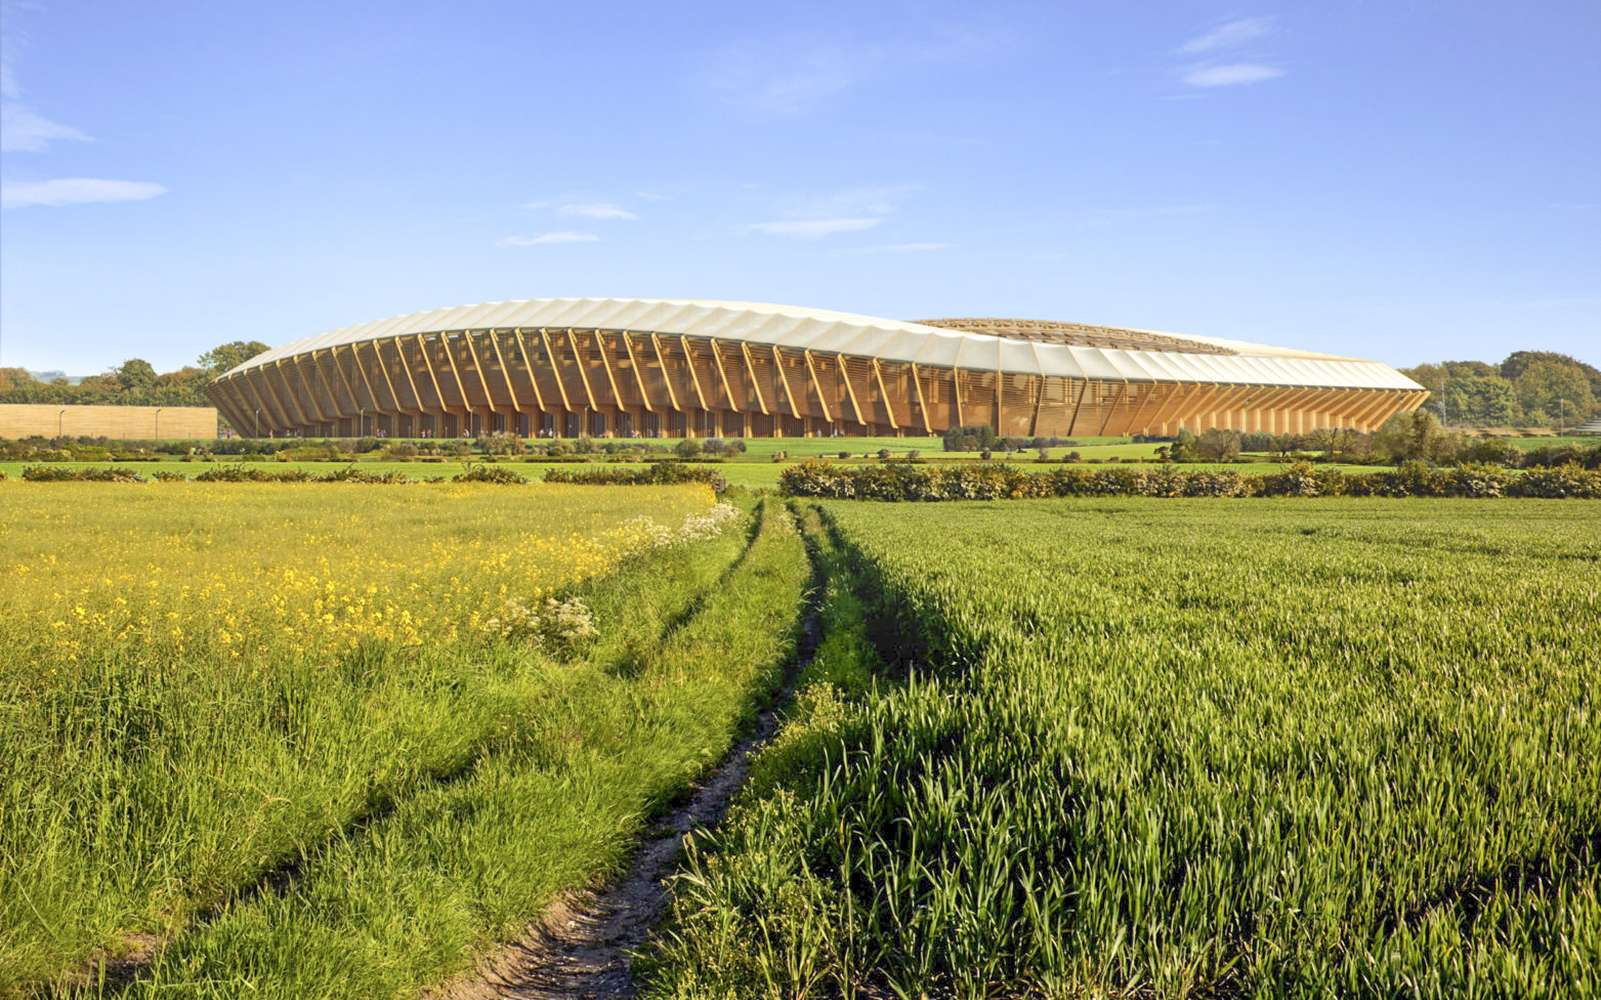 Le futur Eco Park Stadium, stade de football, entièrement fait de bois, signé par le bureau Zaha Hadid Architects. © Courtesy of Zaha Hadid Architects, Negativ